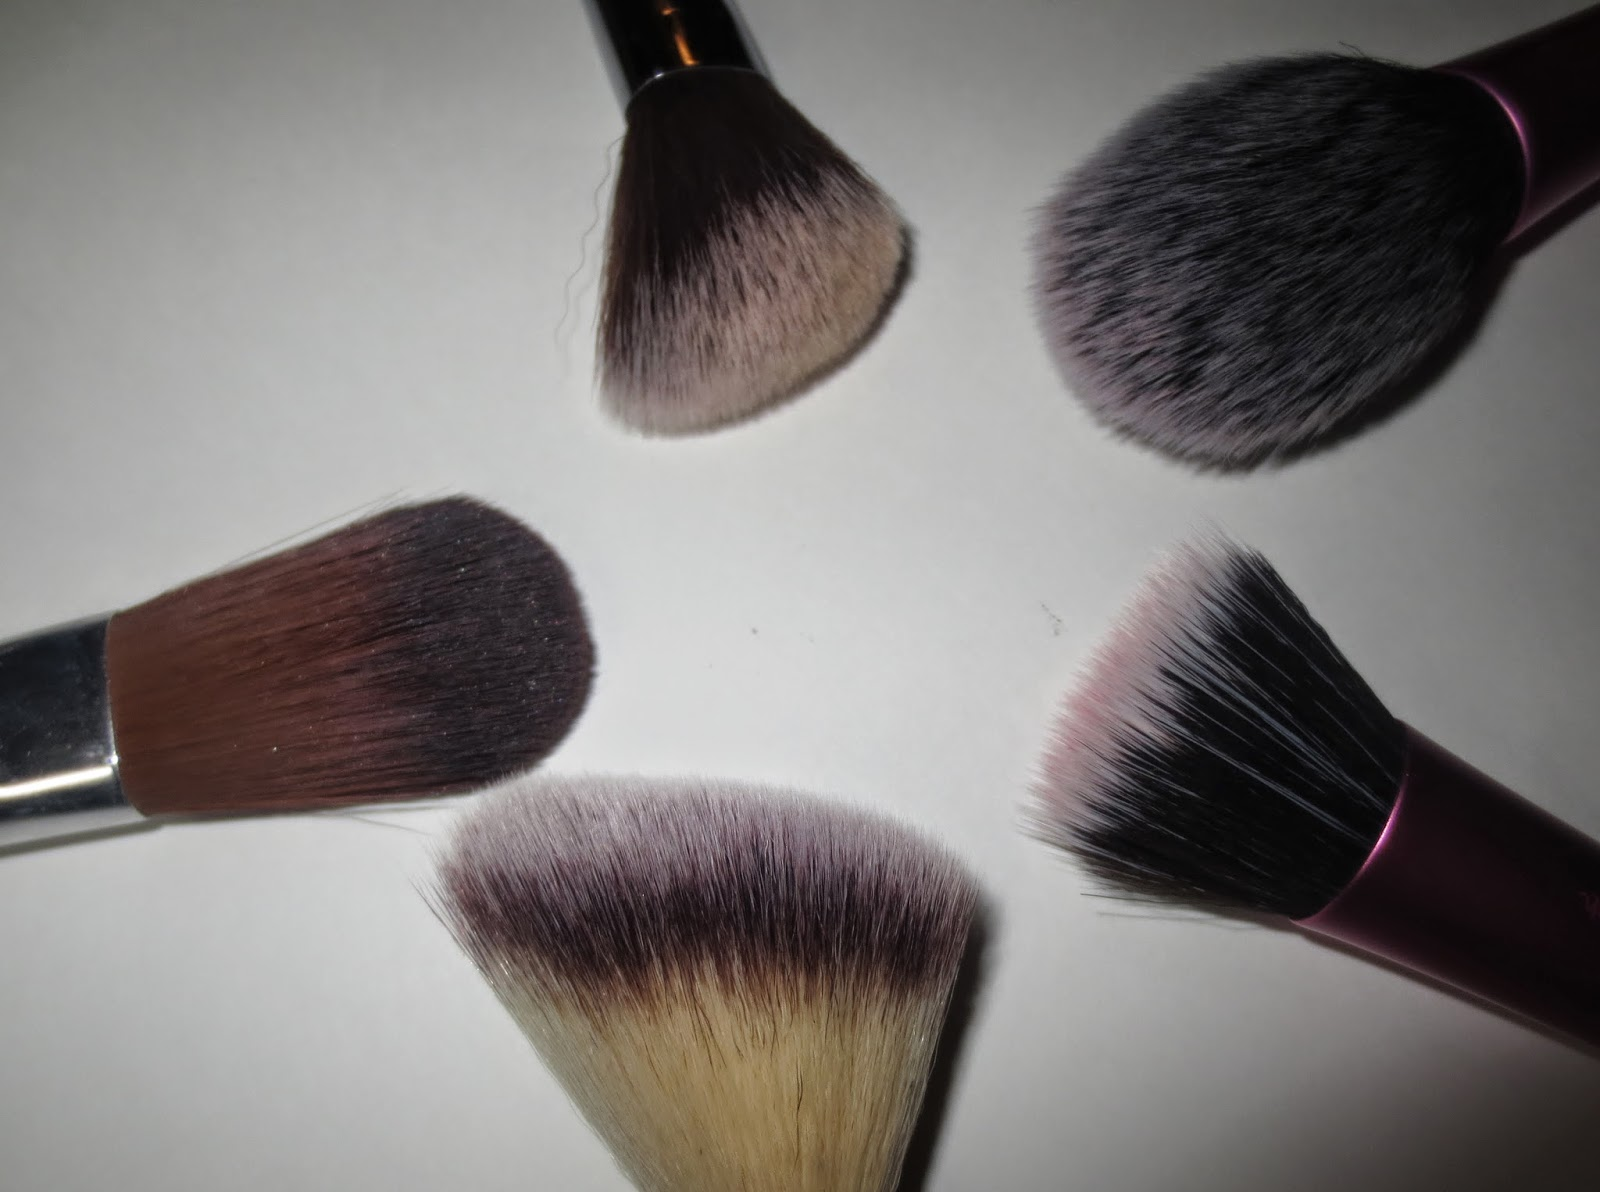 favourite blush brushes